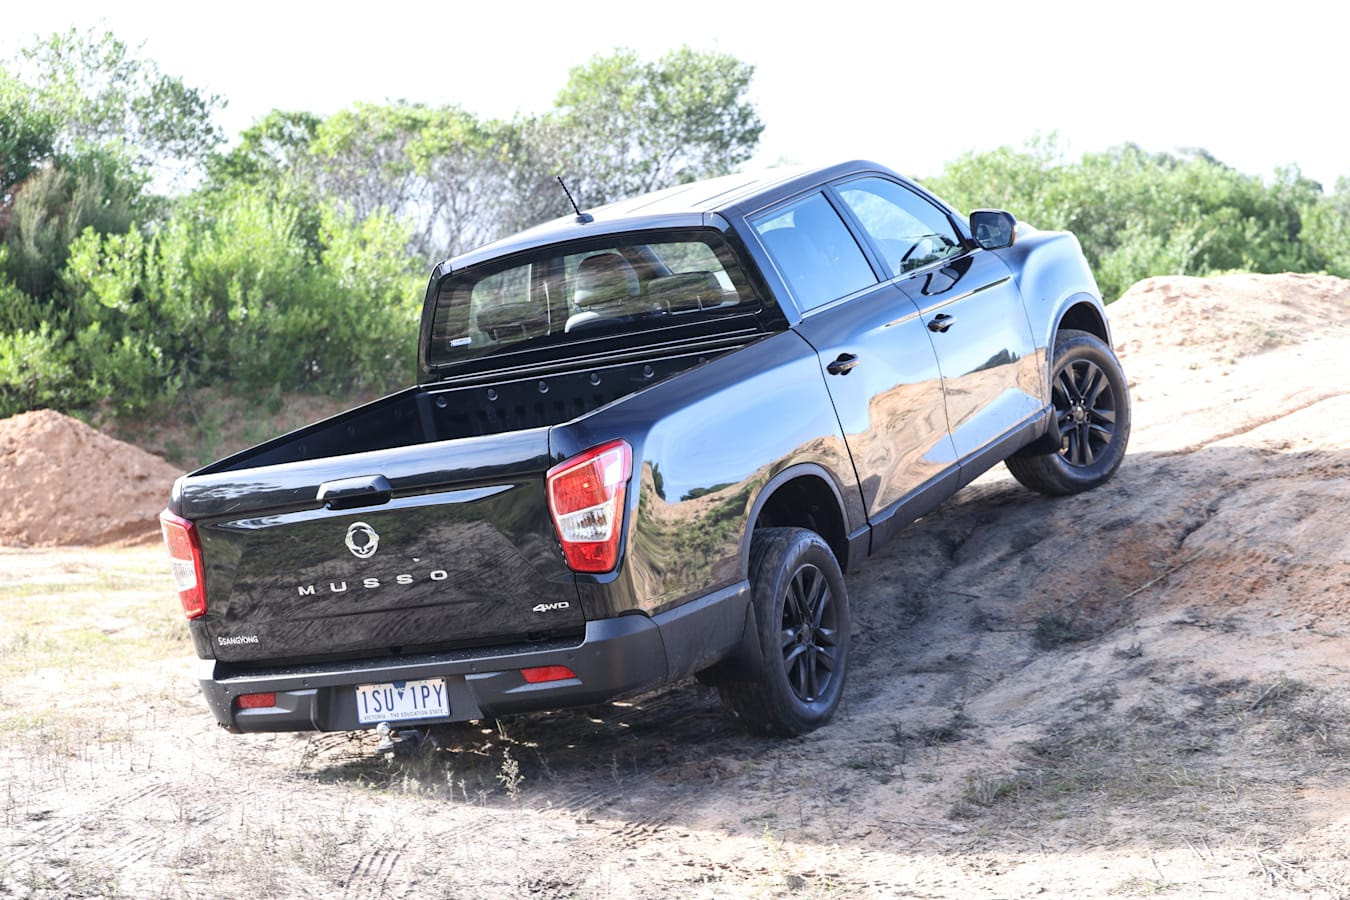 4 X 4 Australia Comparisons 2021 May 21 Ssang Yong Musso XLT Ground Clearance